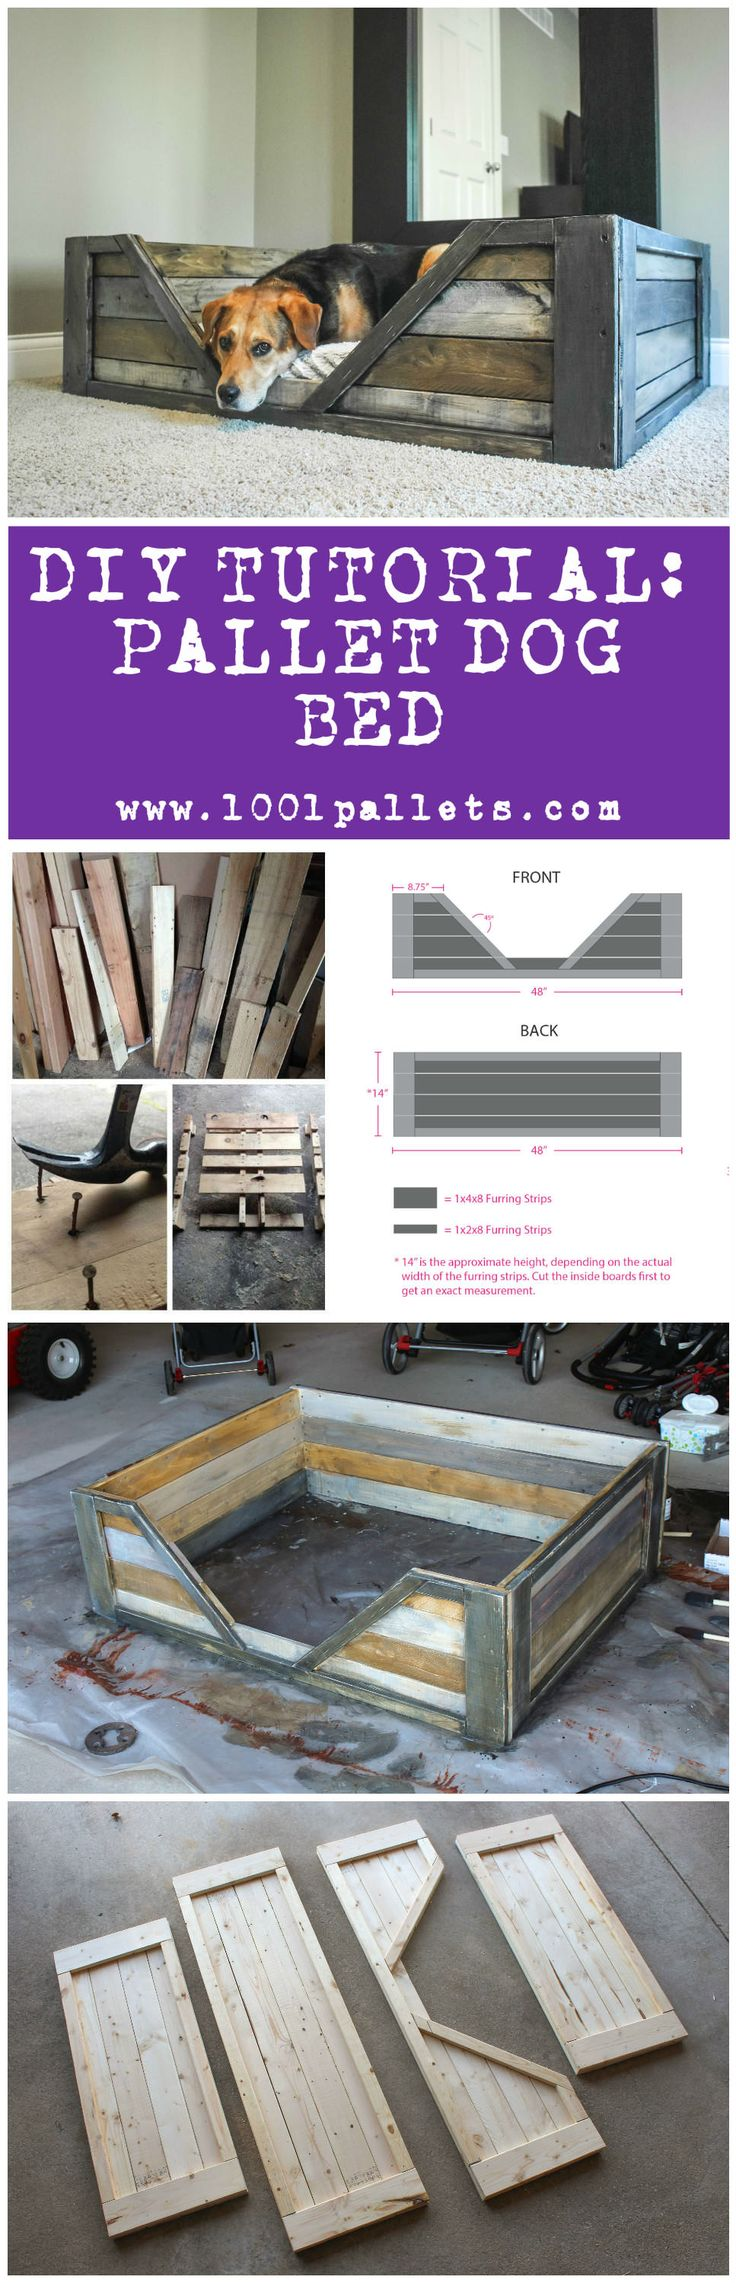 """This tutorial by Dana Laureano from the blog """"Ruggy DIY"""" in collaboration with 1001Pallets will describe how to make this …"""